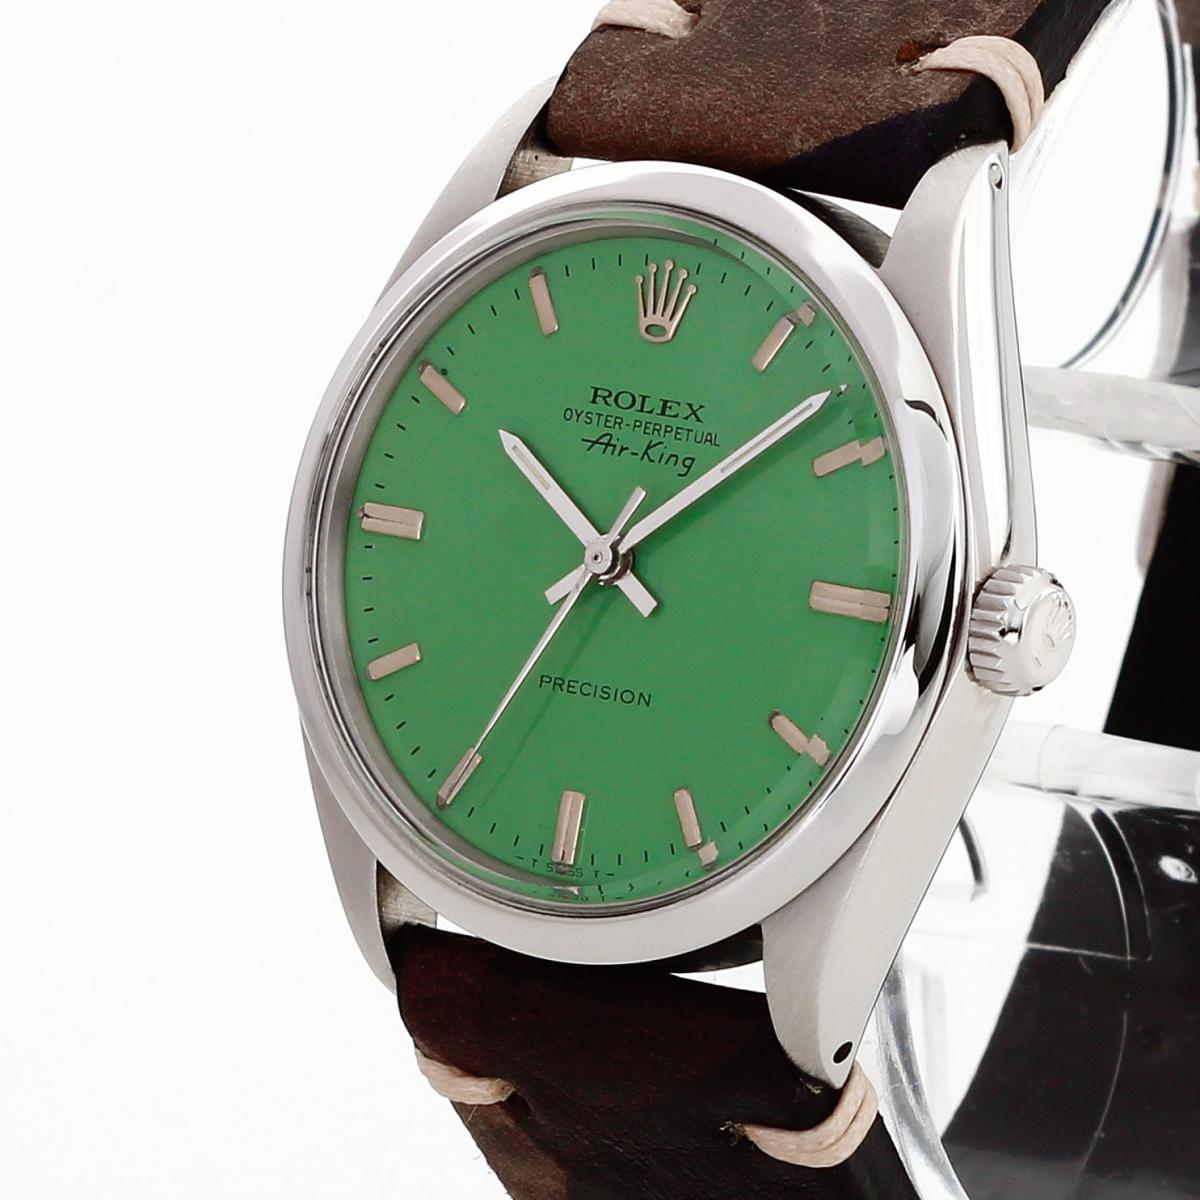 Rolex Oyster Perpetual Air King Precision Ref 5500